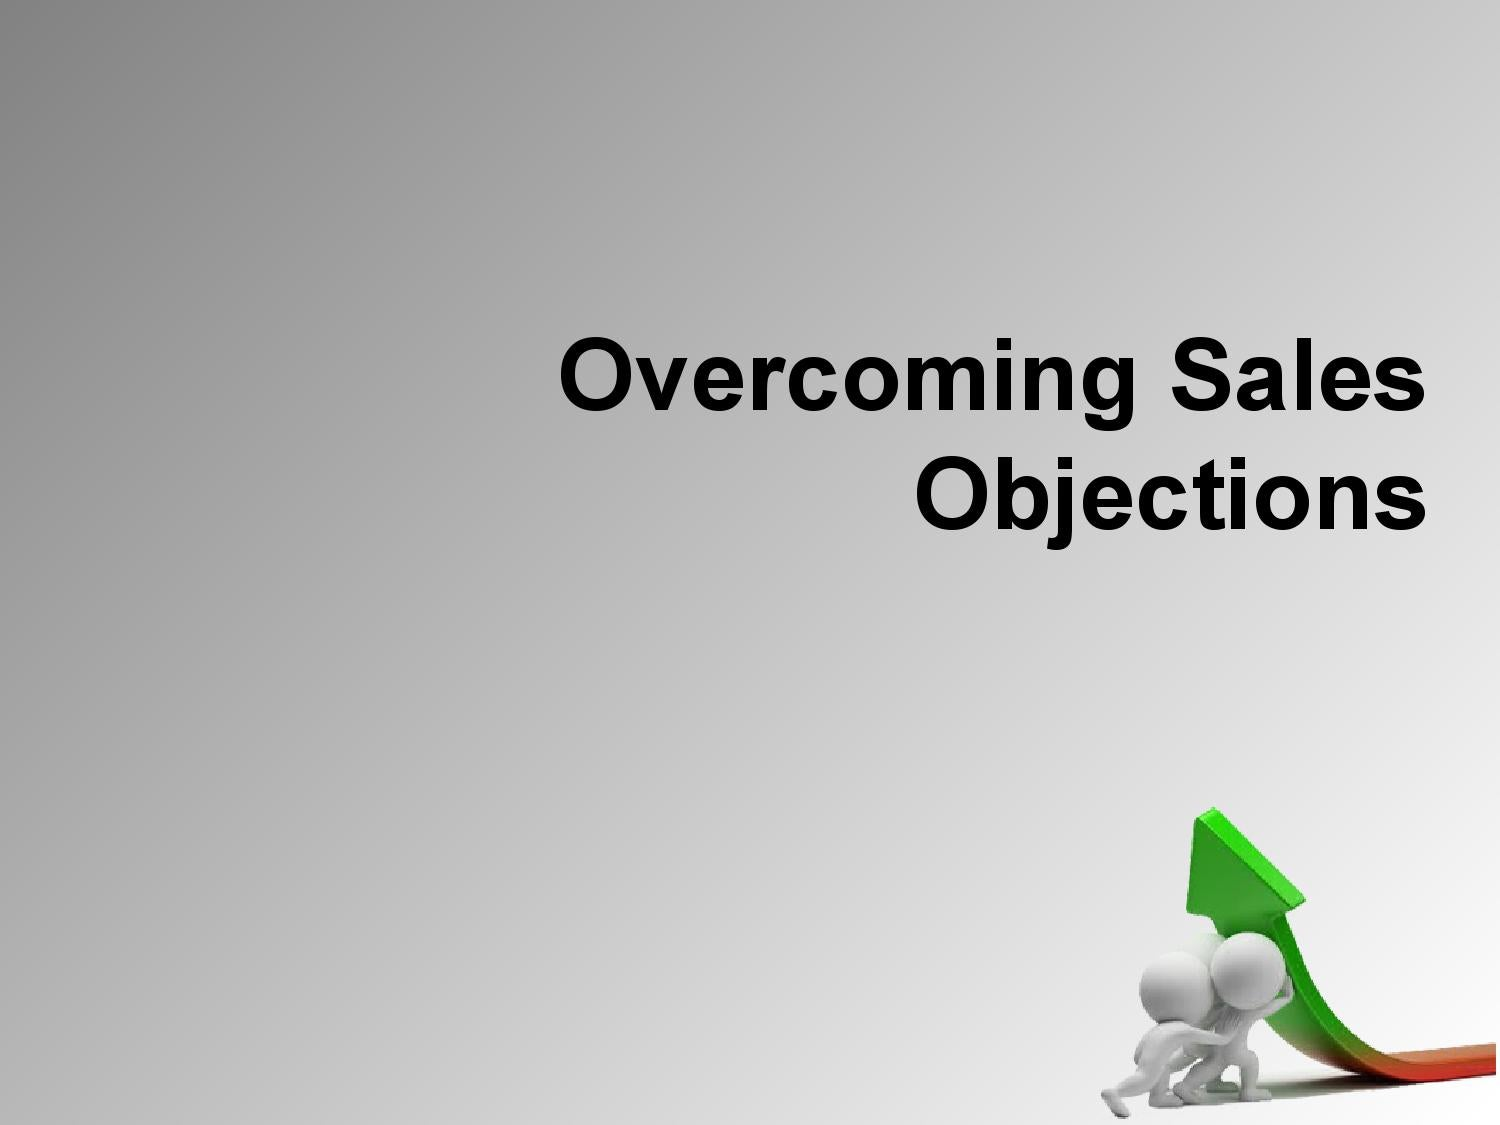 Overcoming Sales Objections Sample Powerpoint by